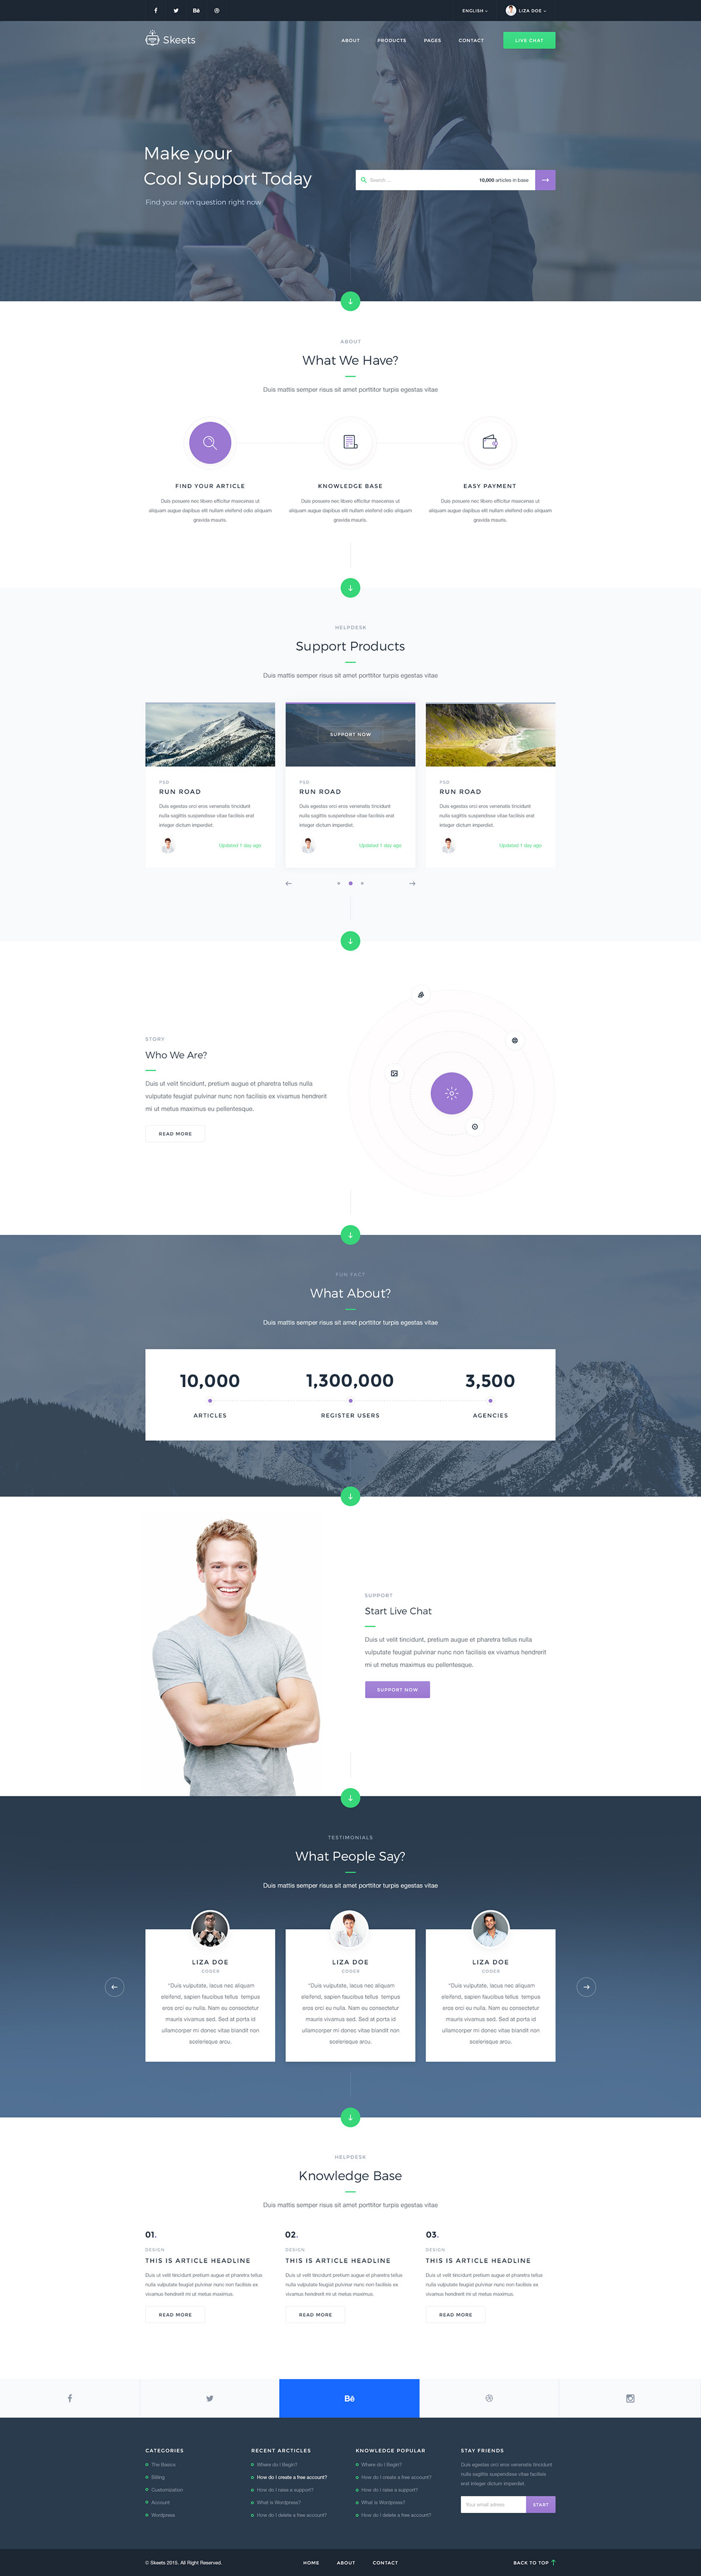 Skeets — Helpdesk and Knowledge Base PSD Template on Behance